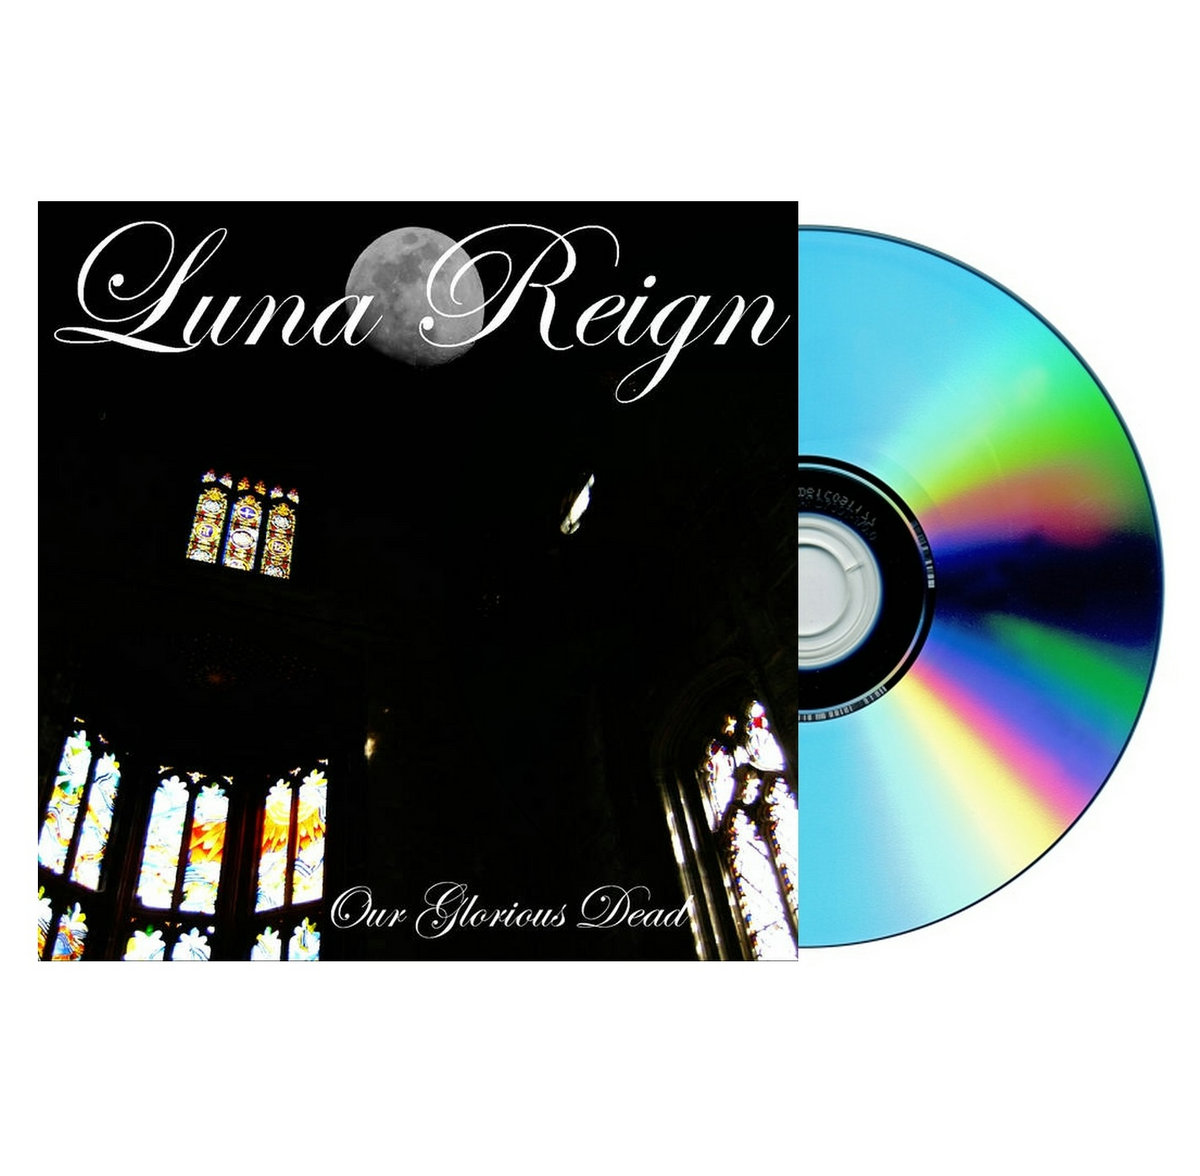 Luna reign our glorious dead album luna reign new luna reign shadow room cd in wallet case with lyrics sheet includes free download of full album plus free uk post signed by luna malvernweather Images